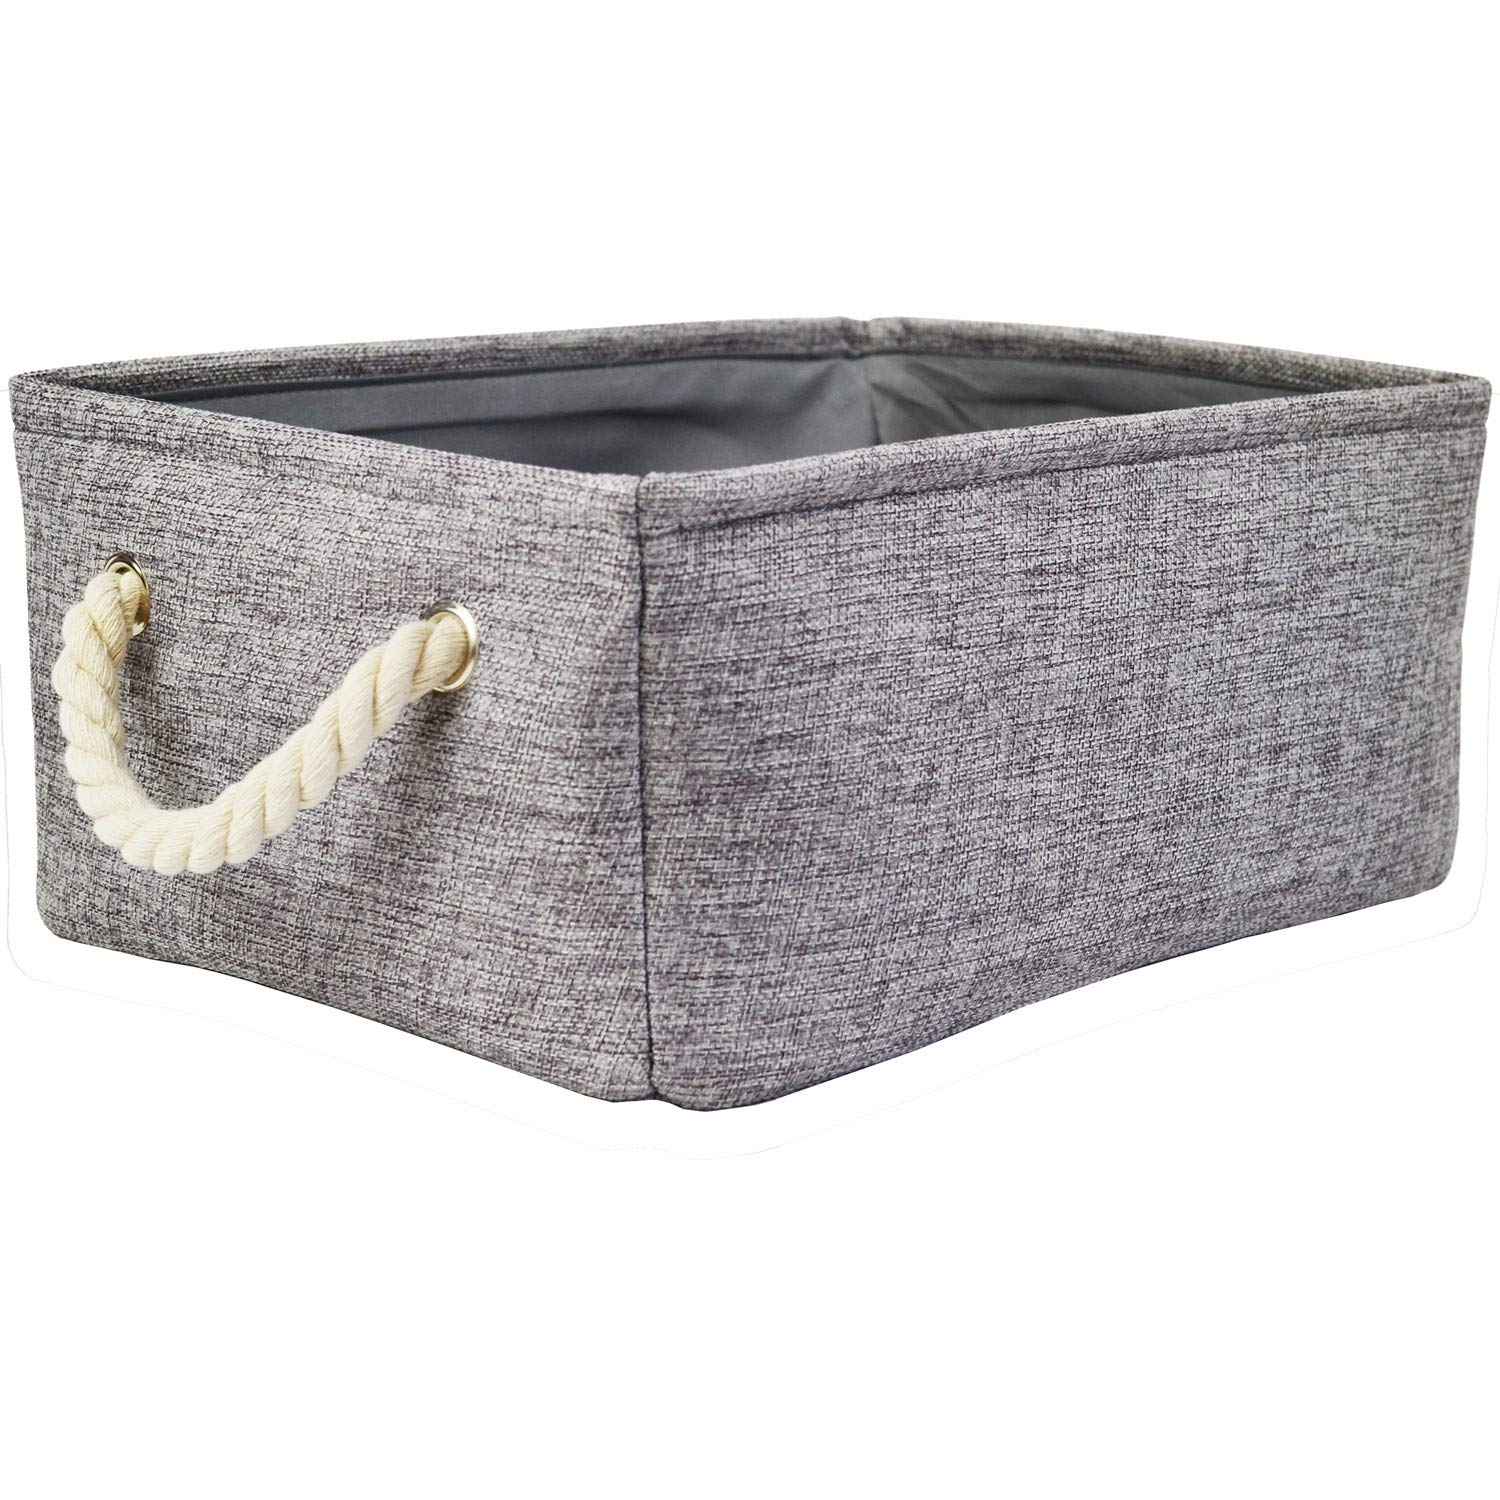 Grey Storage Baskets with Rope Handles, Fabric Decorative Baskets for Gift Empty Storage Bins for Shelves (16.5 x 12.4 x 6.5inch)